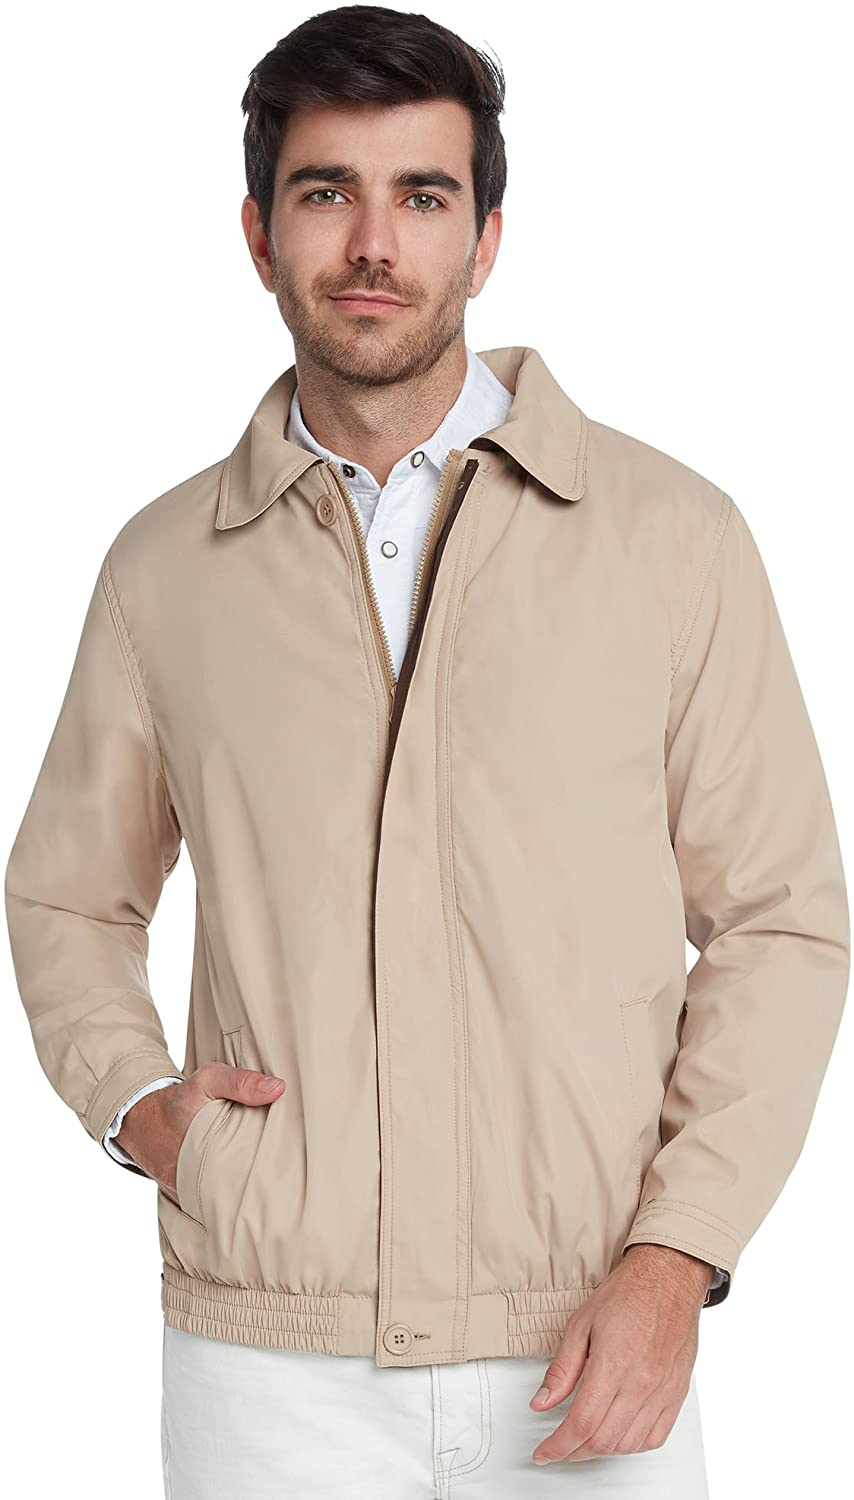 9 Crowns Men's Water Resistant Lightweight Paneled Harrington Jacket